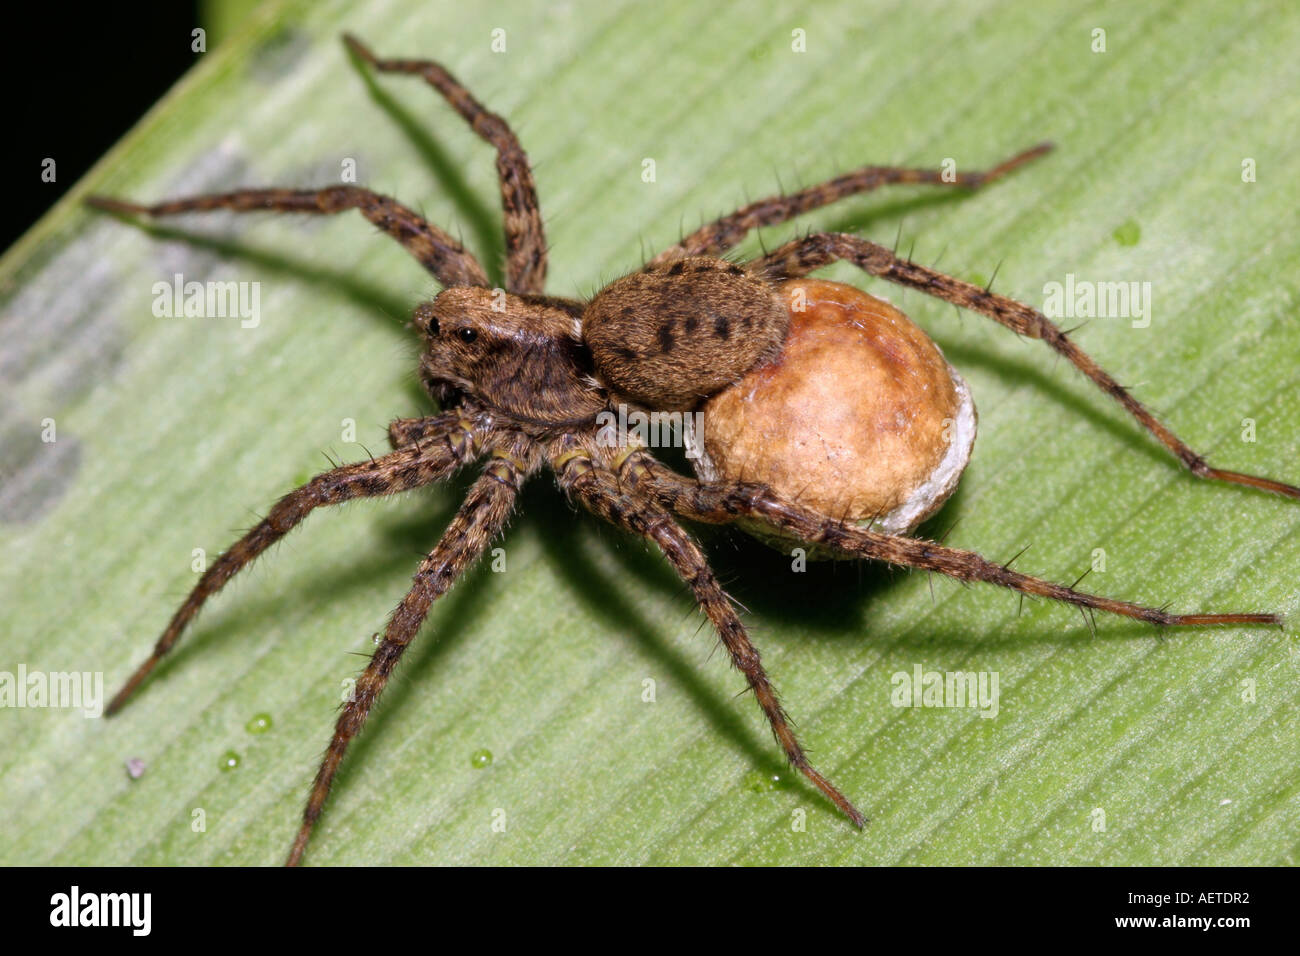 Spotted wolf spider Pardosa amentata Lycosidae carrying her egg sac which clearly shows the white seam UK - Stock Image